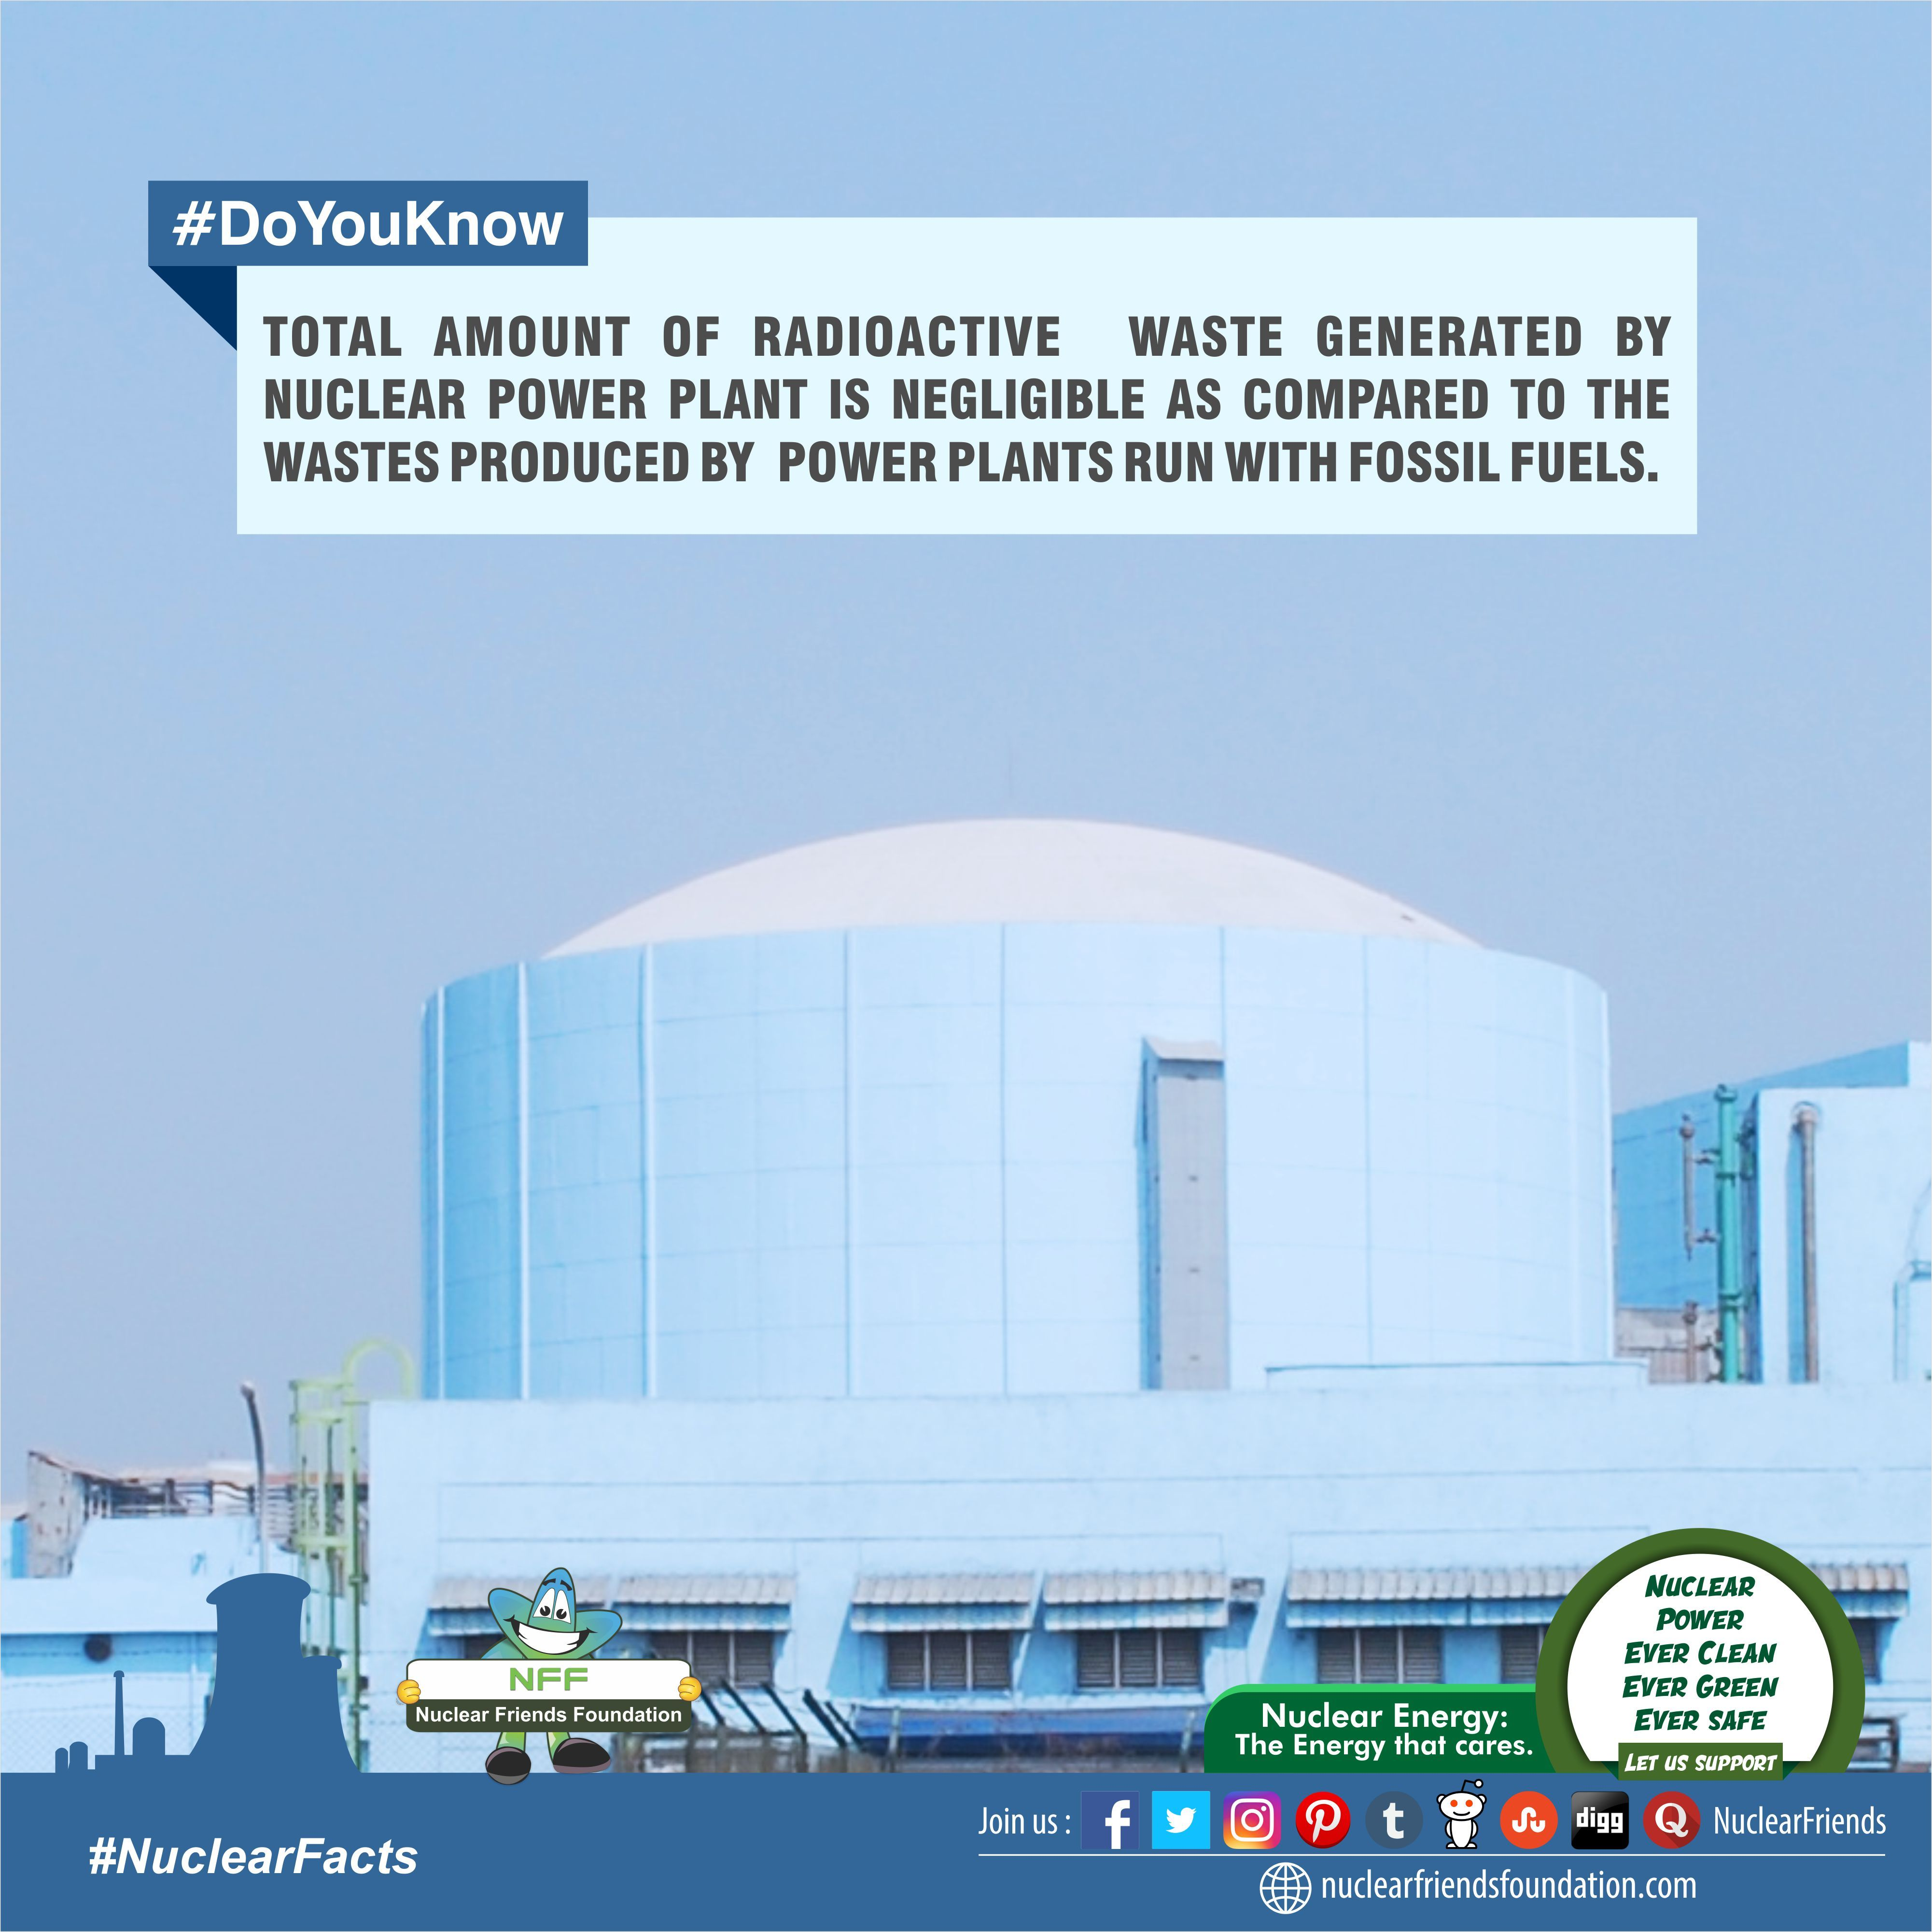 Doyouknow Total Amount Of Radioactive Waste Generated By Nuclear Power Plant Is Negligible As Compared To The Nuclear Energy Nuclear Power Plant Nuclear Power